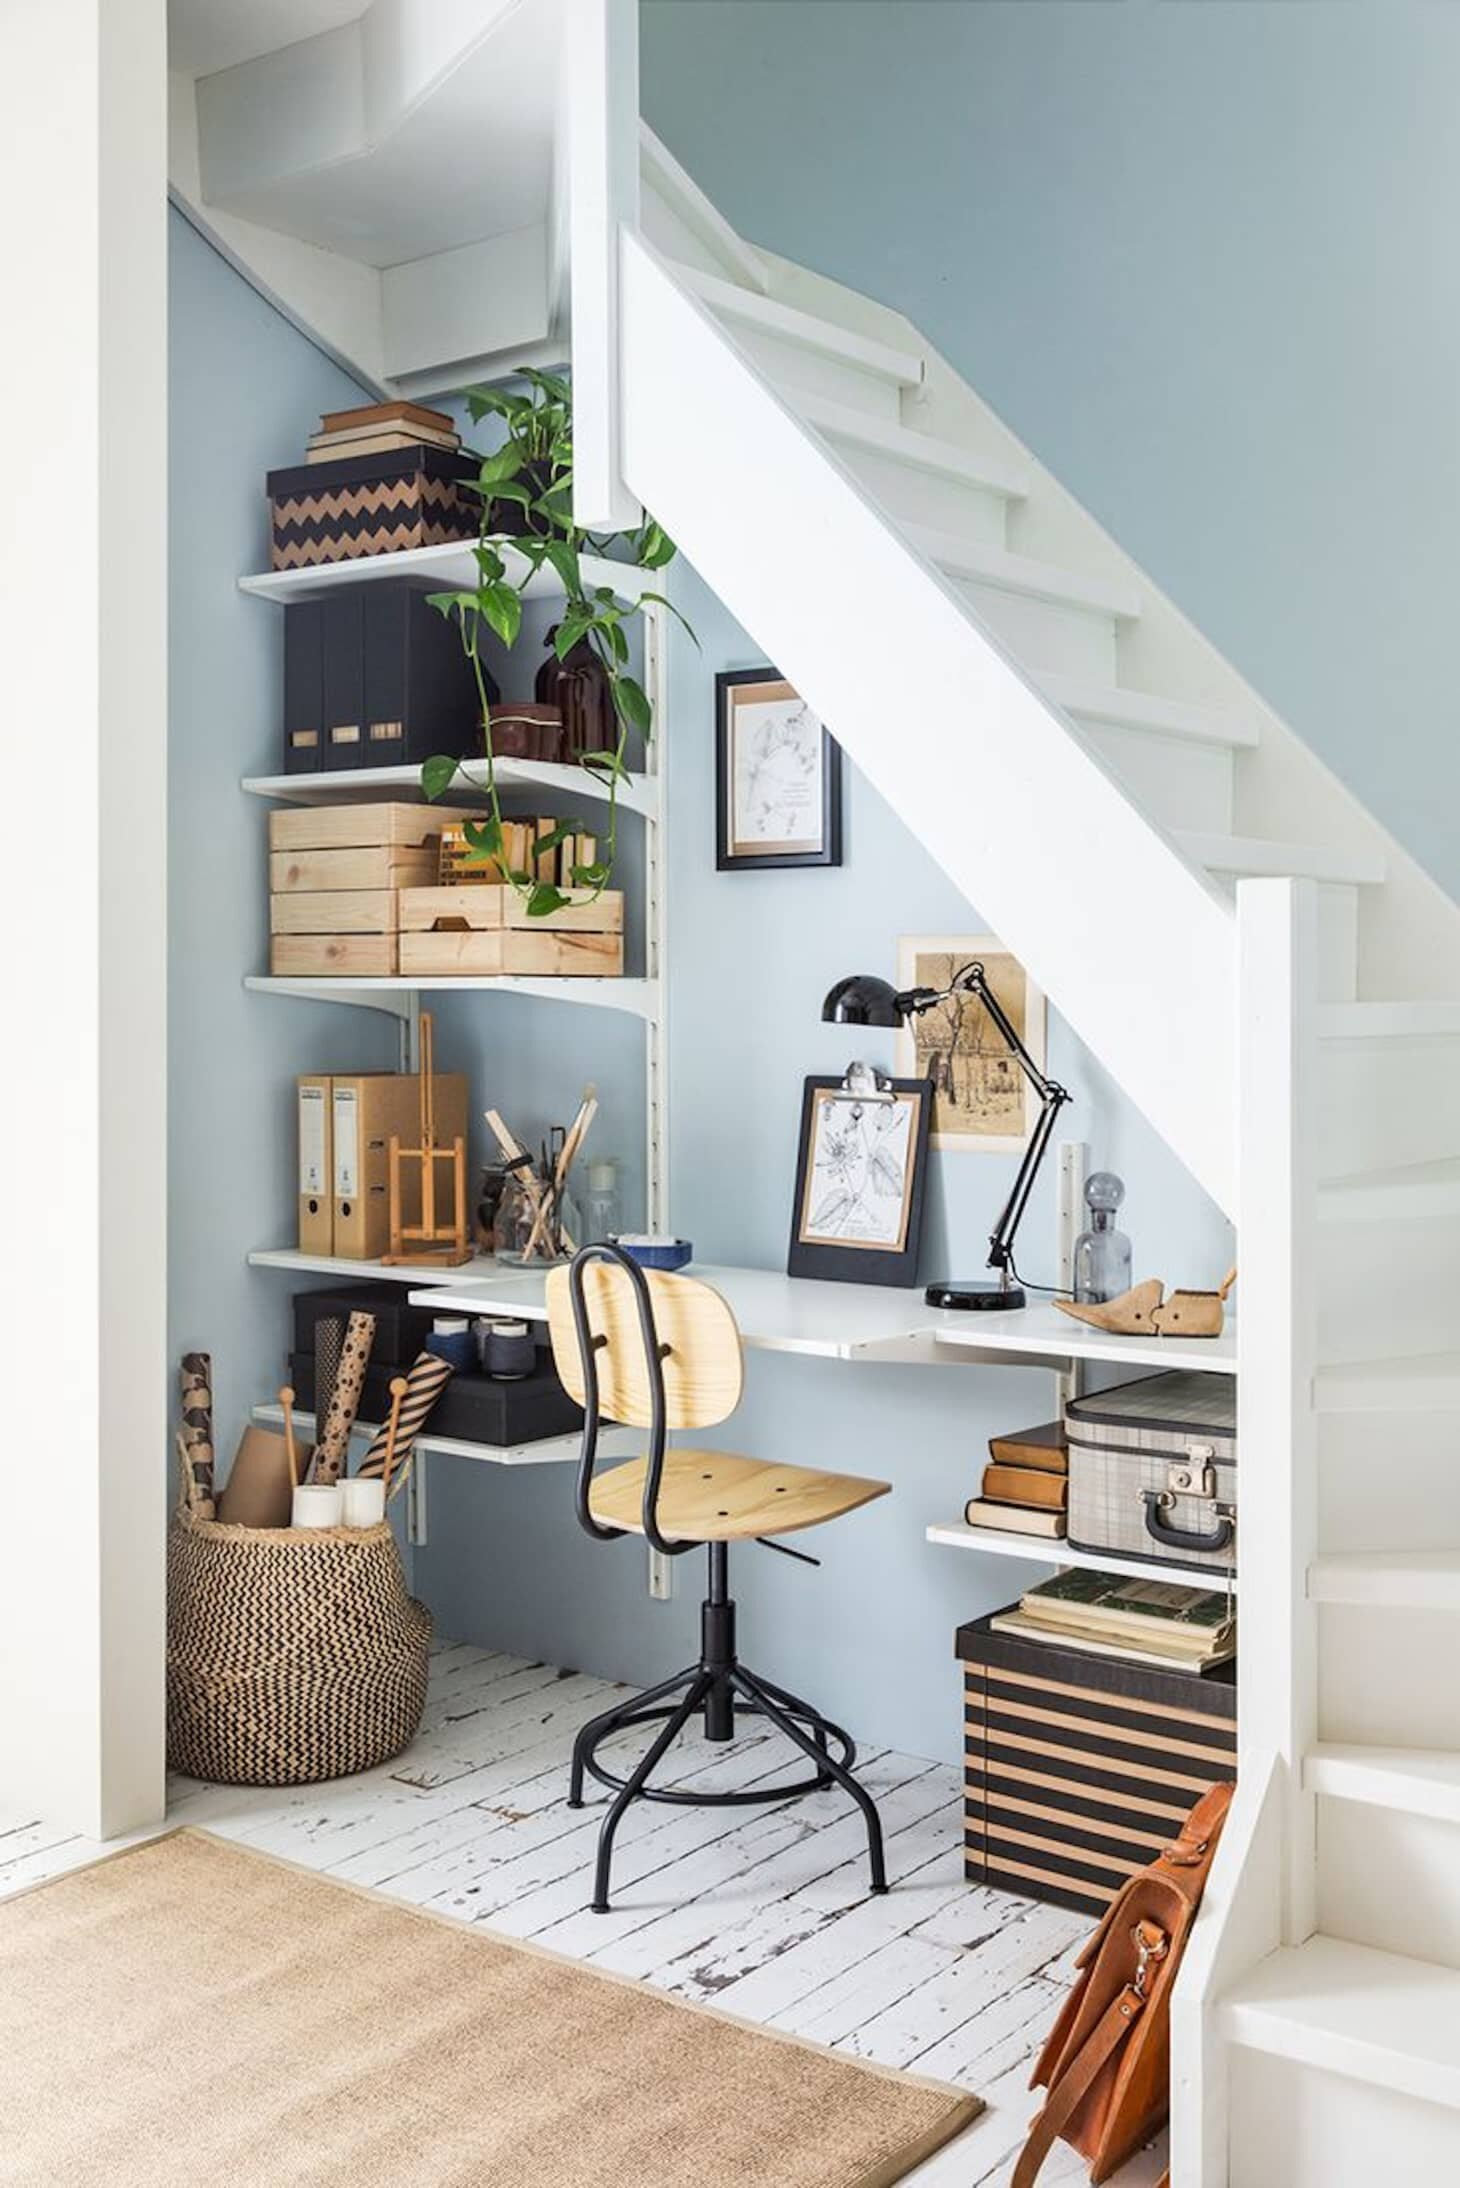 16+ Inspiring Small Home Office Ideas — THE NORDROOM